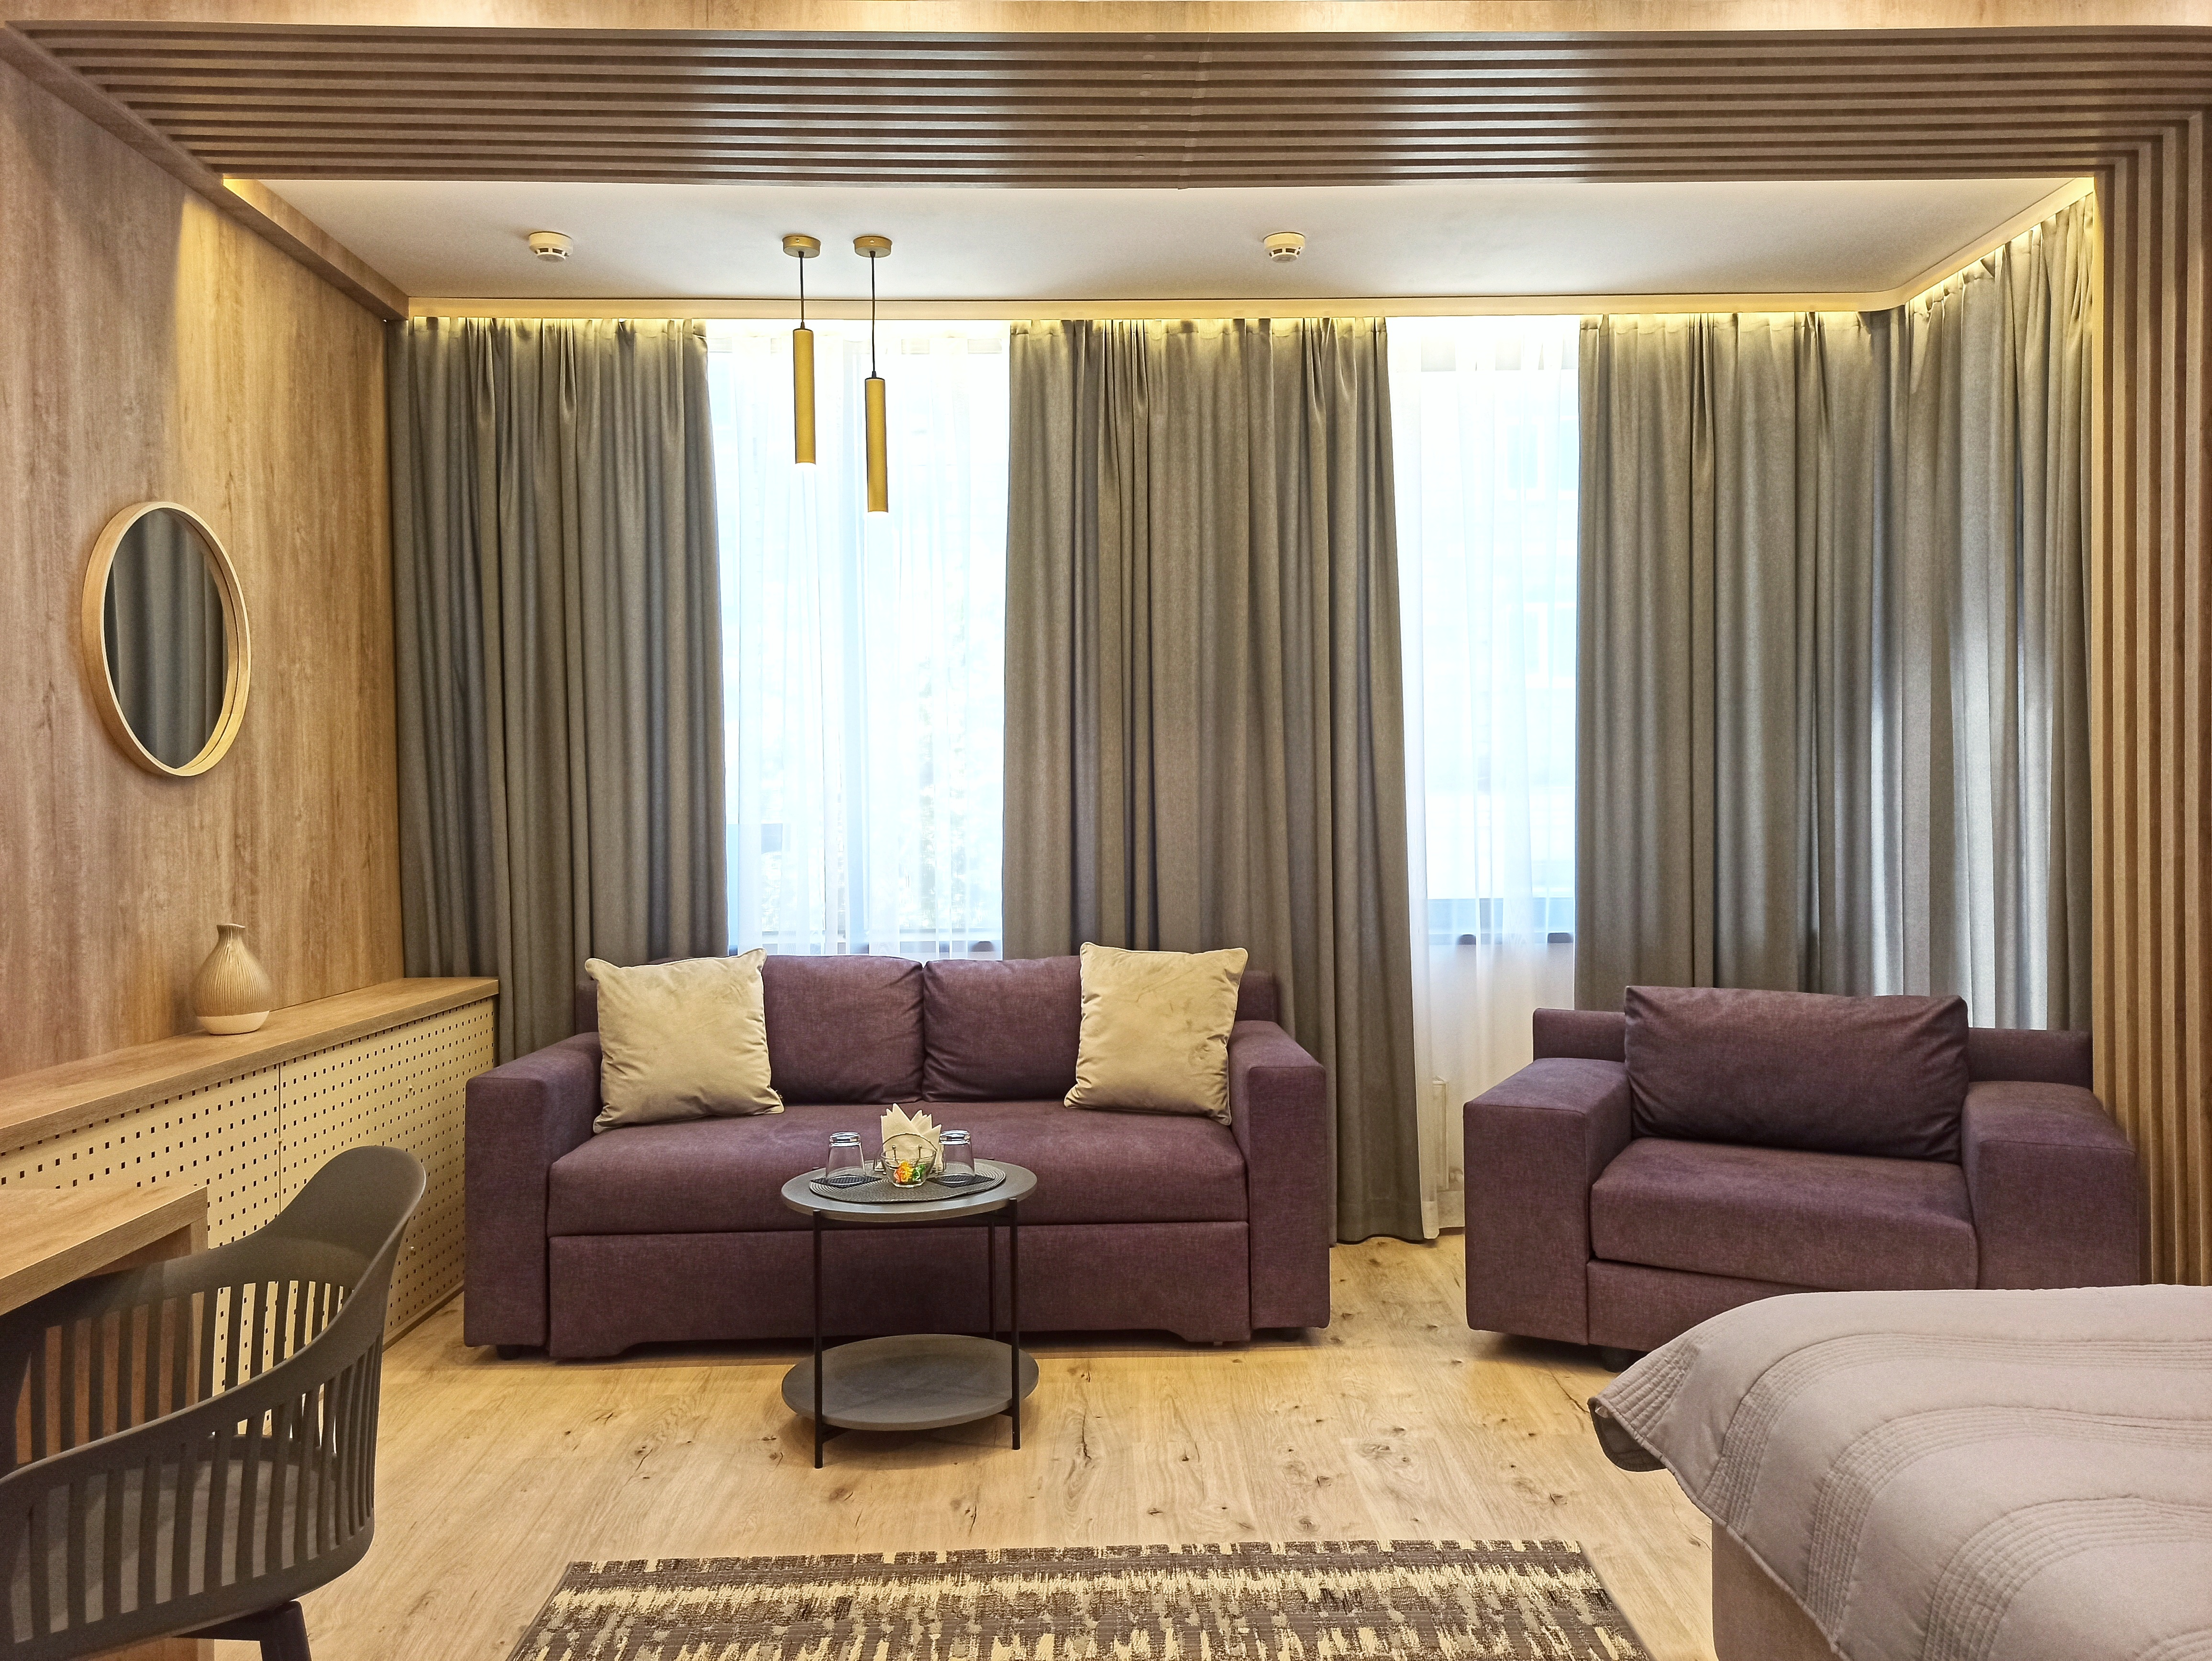 Sofas in the Suite